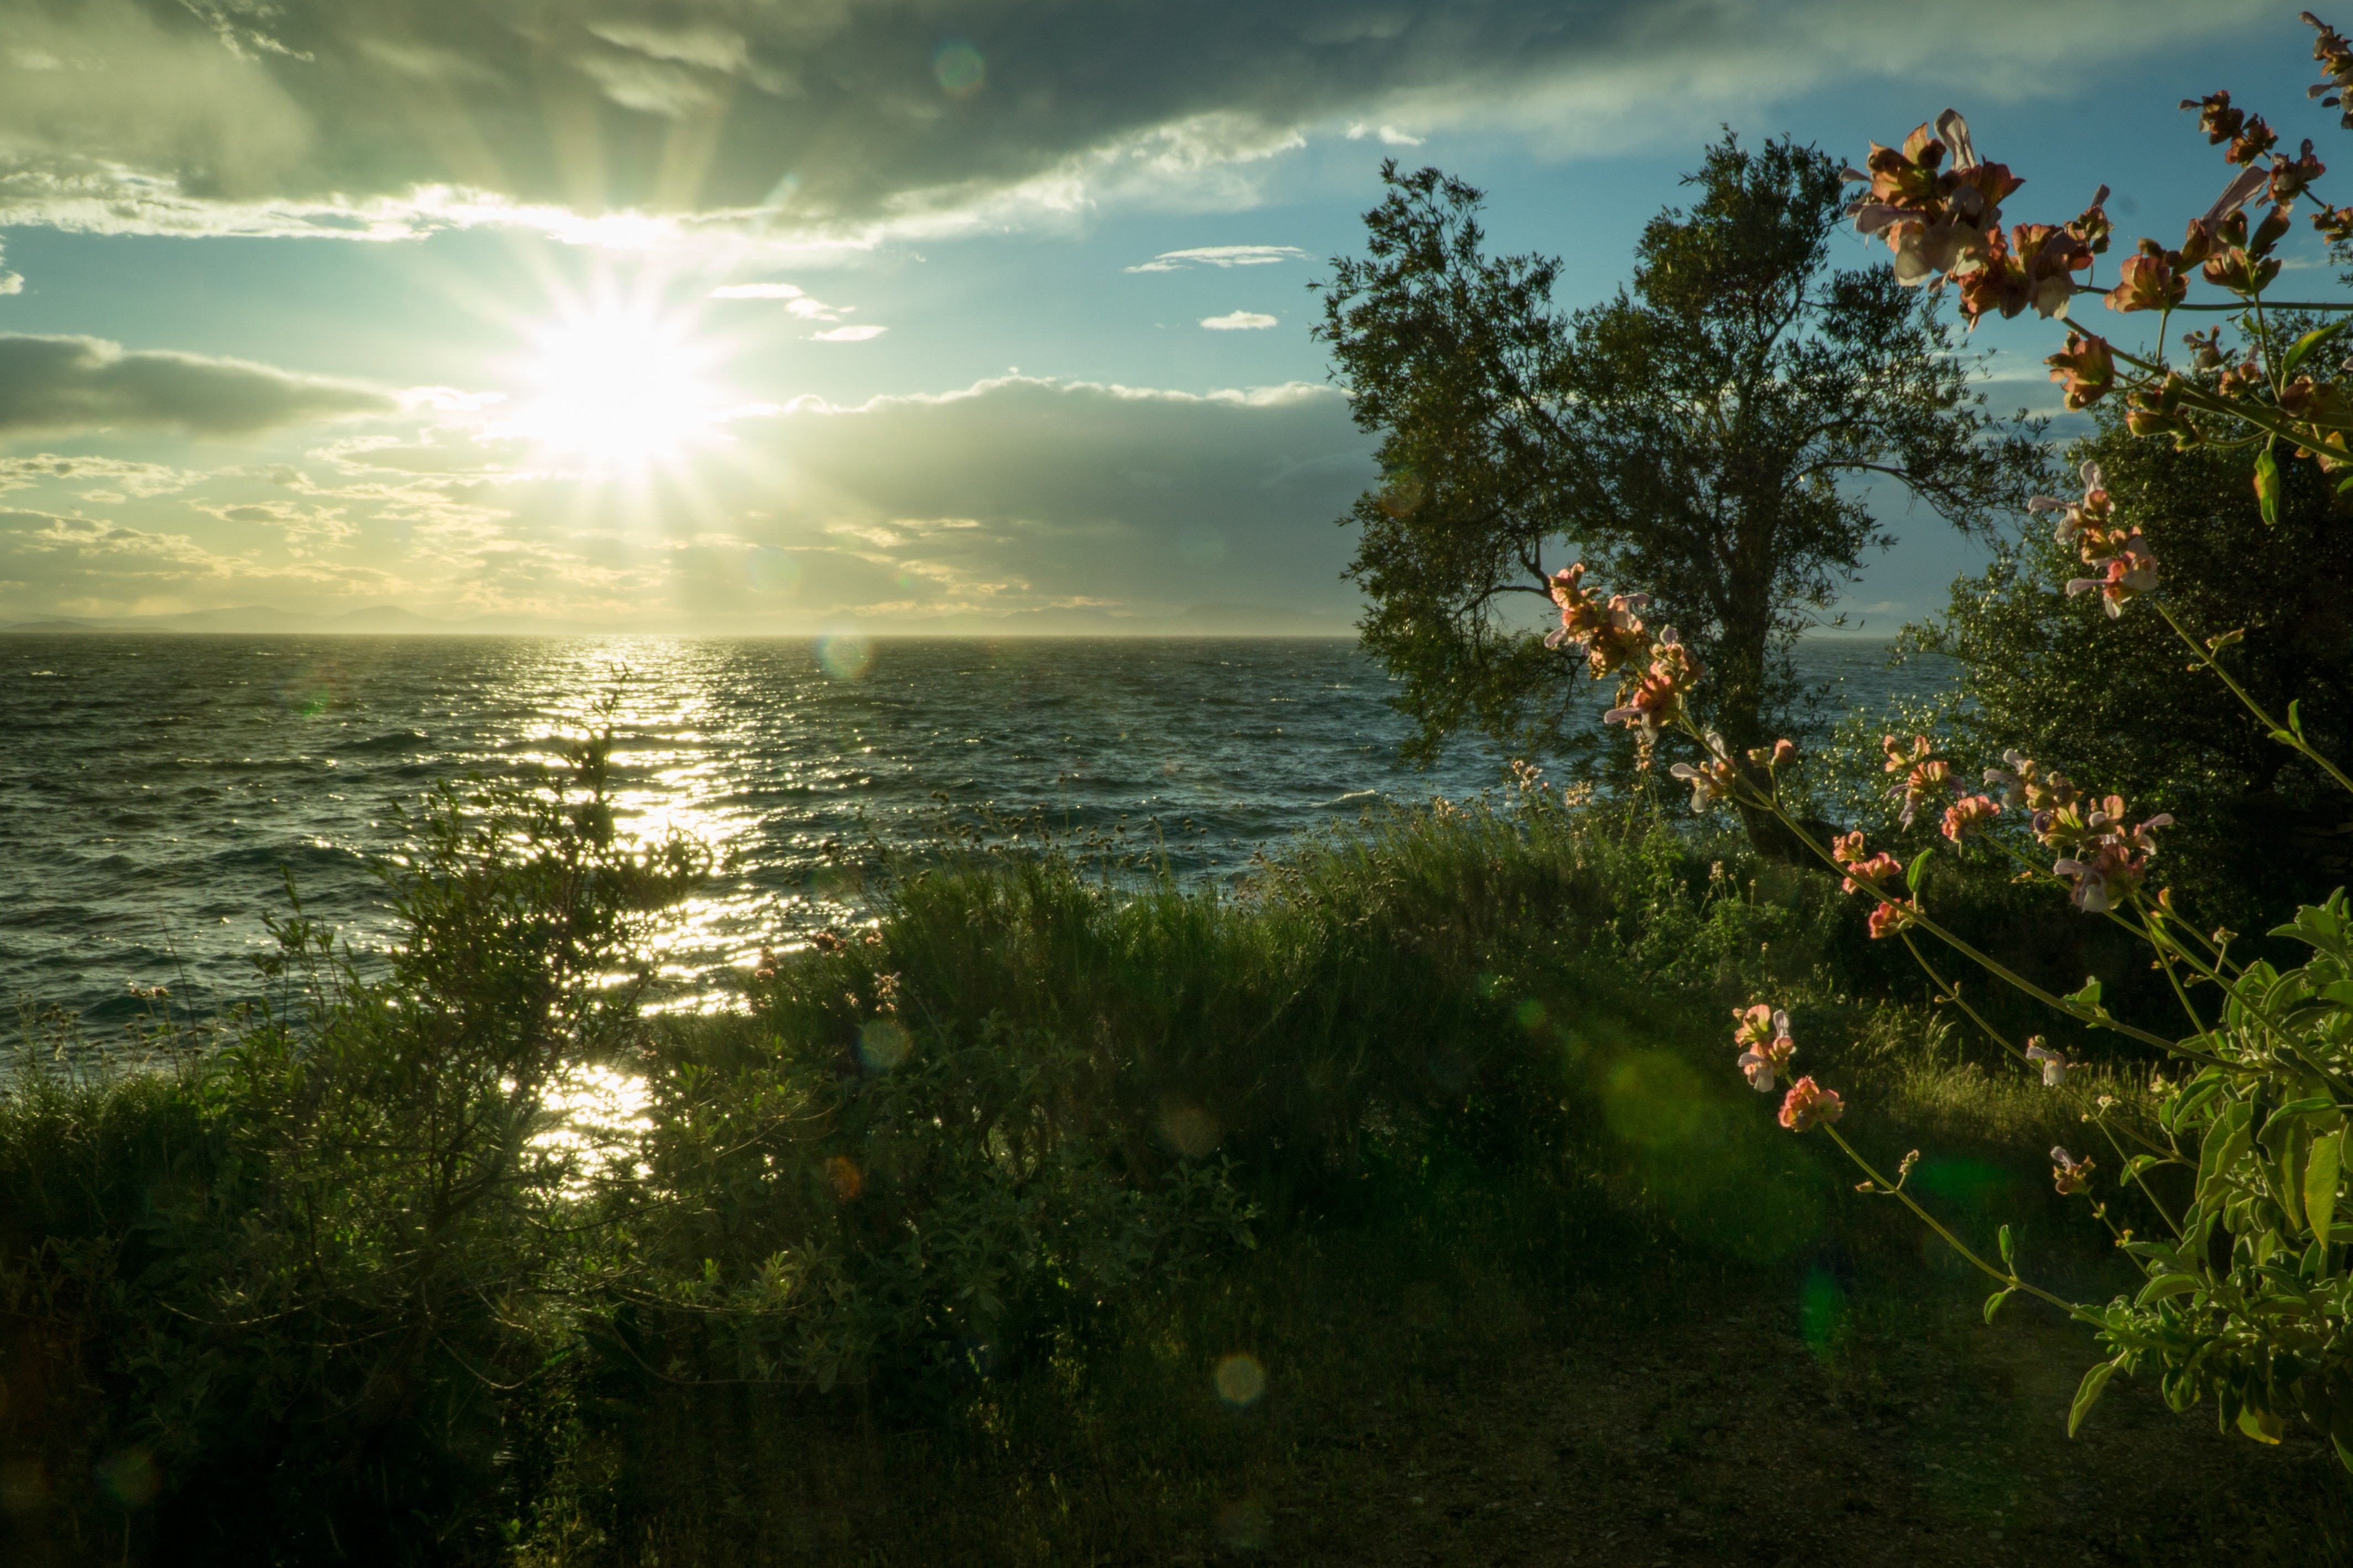 Sun Ray Hitting Body of Water Green Grass Trees White Clouds during Sunrise, Beach, Seascape, Water, Trees, HQ Photo